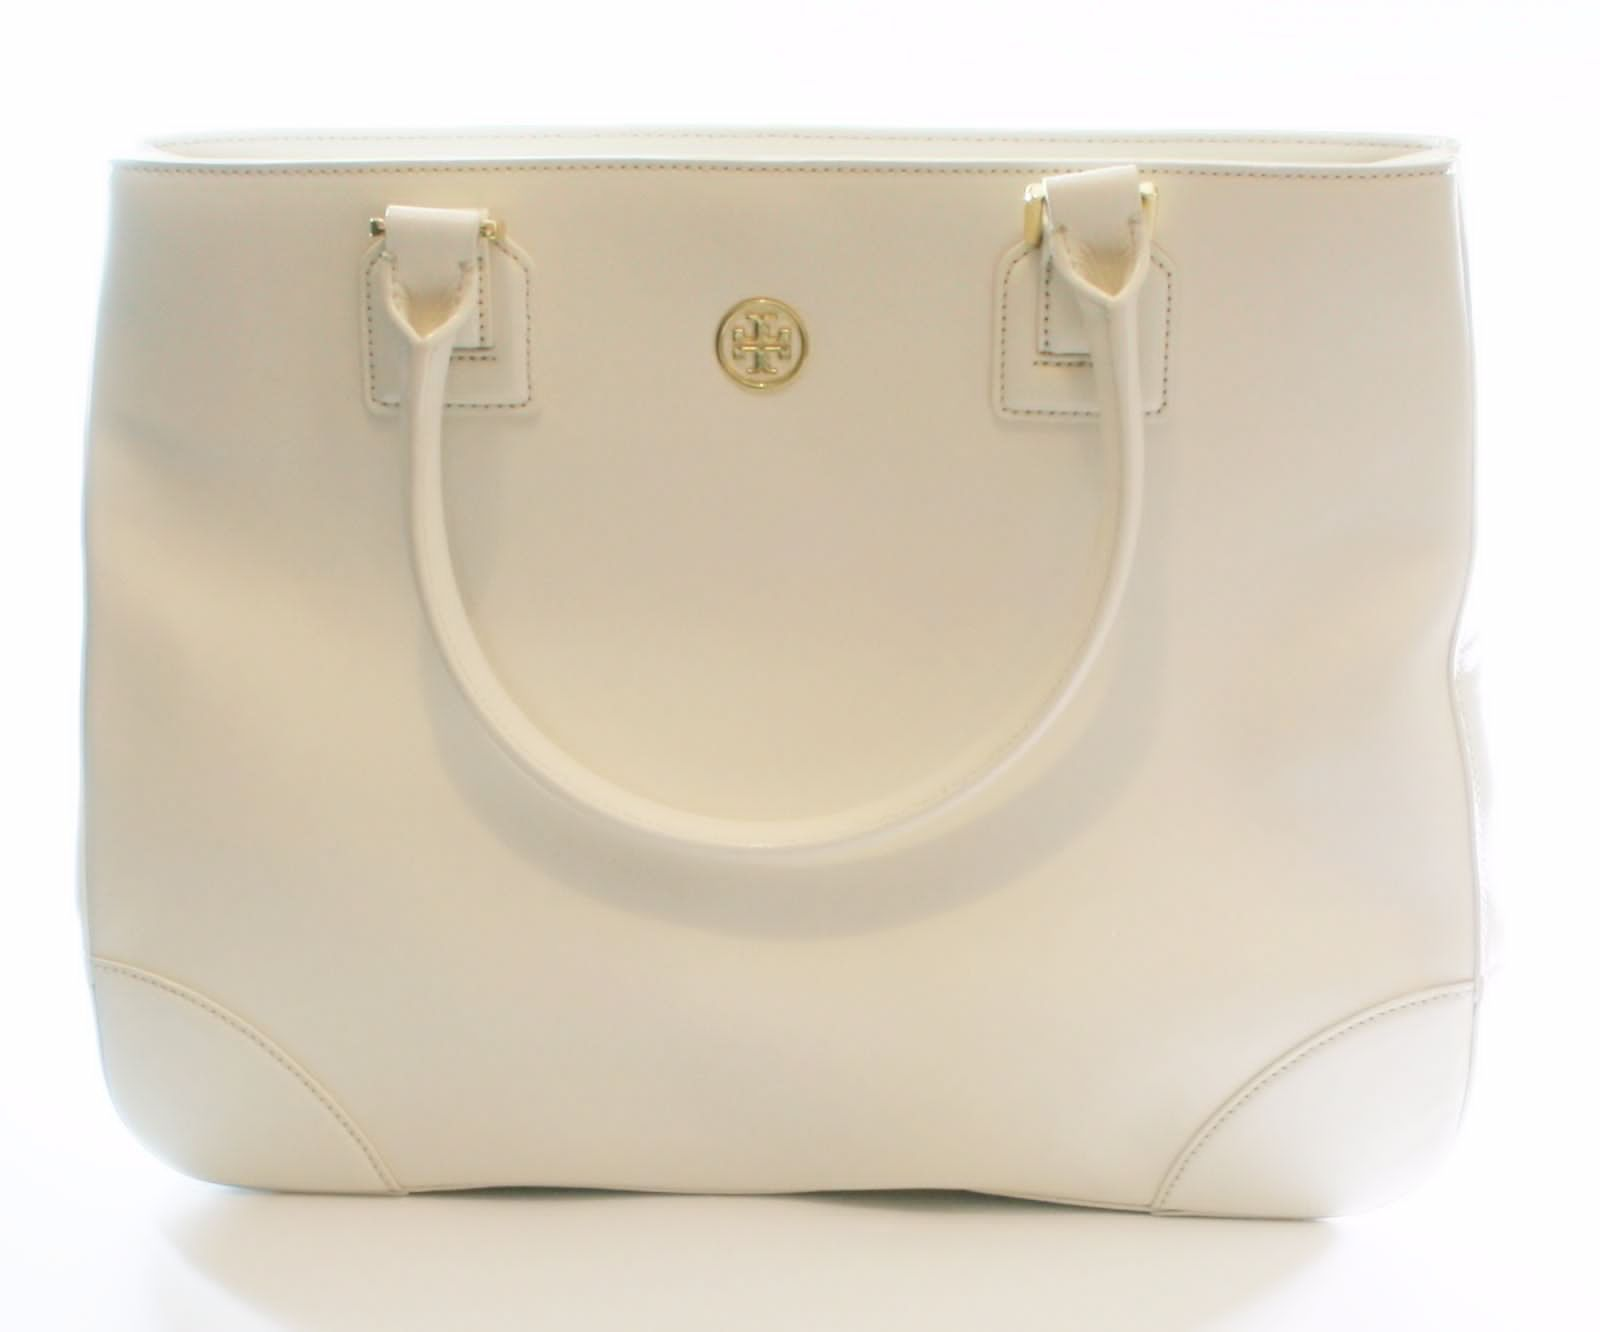 Primary image for Tory Burch Robinson Ivory Cream Tote Bag Saffiano Leather Large Handbag RRP£495